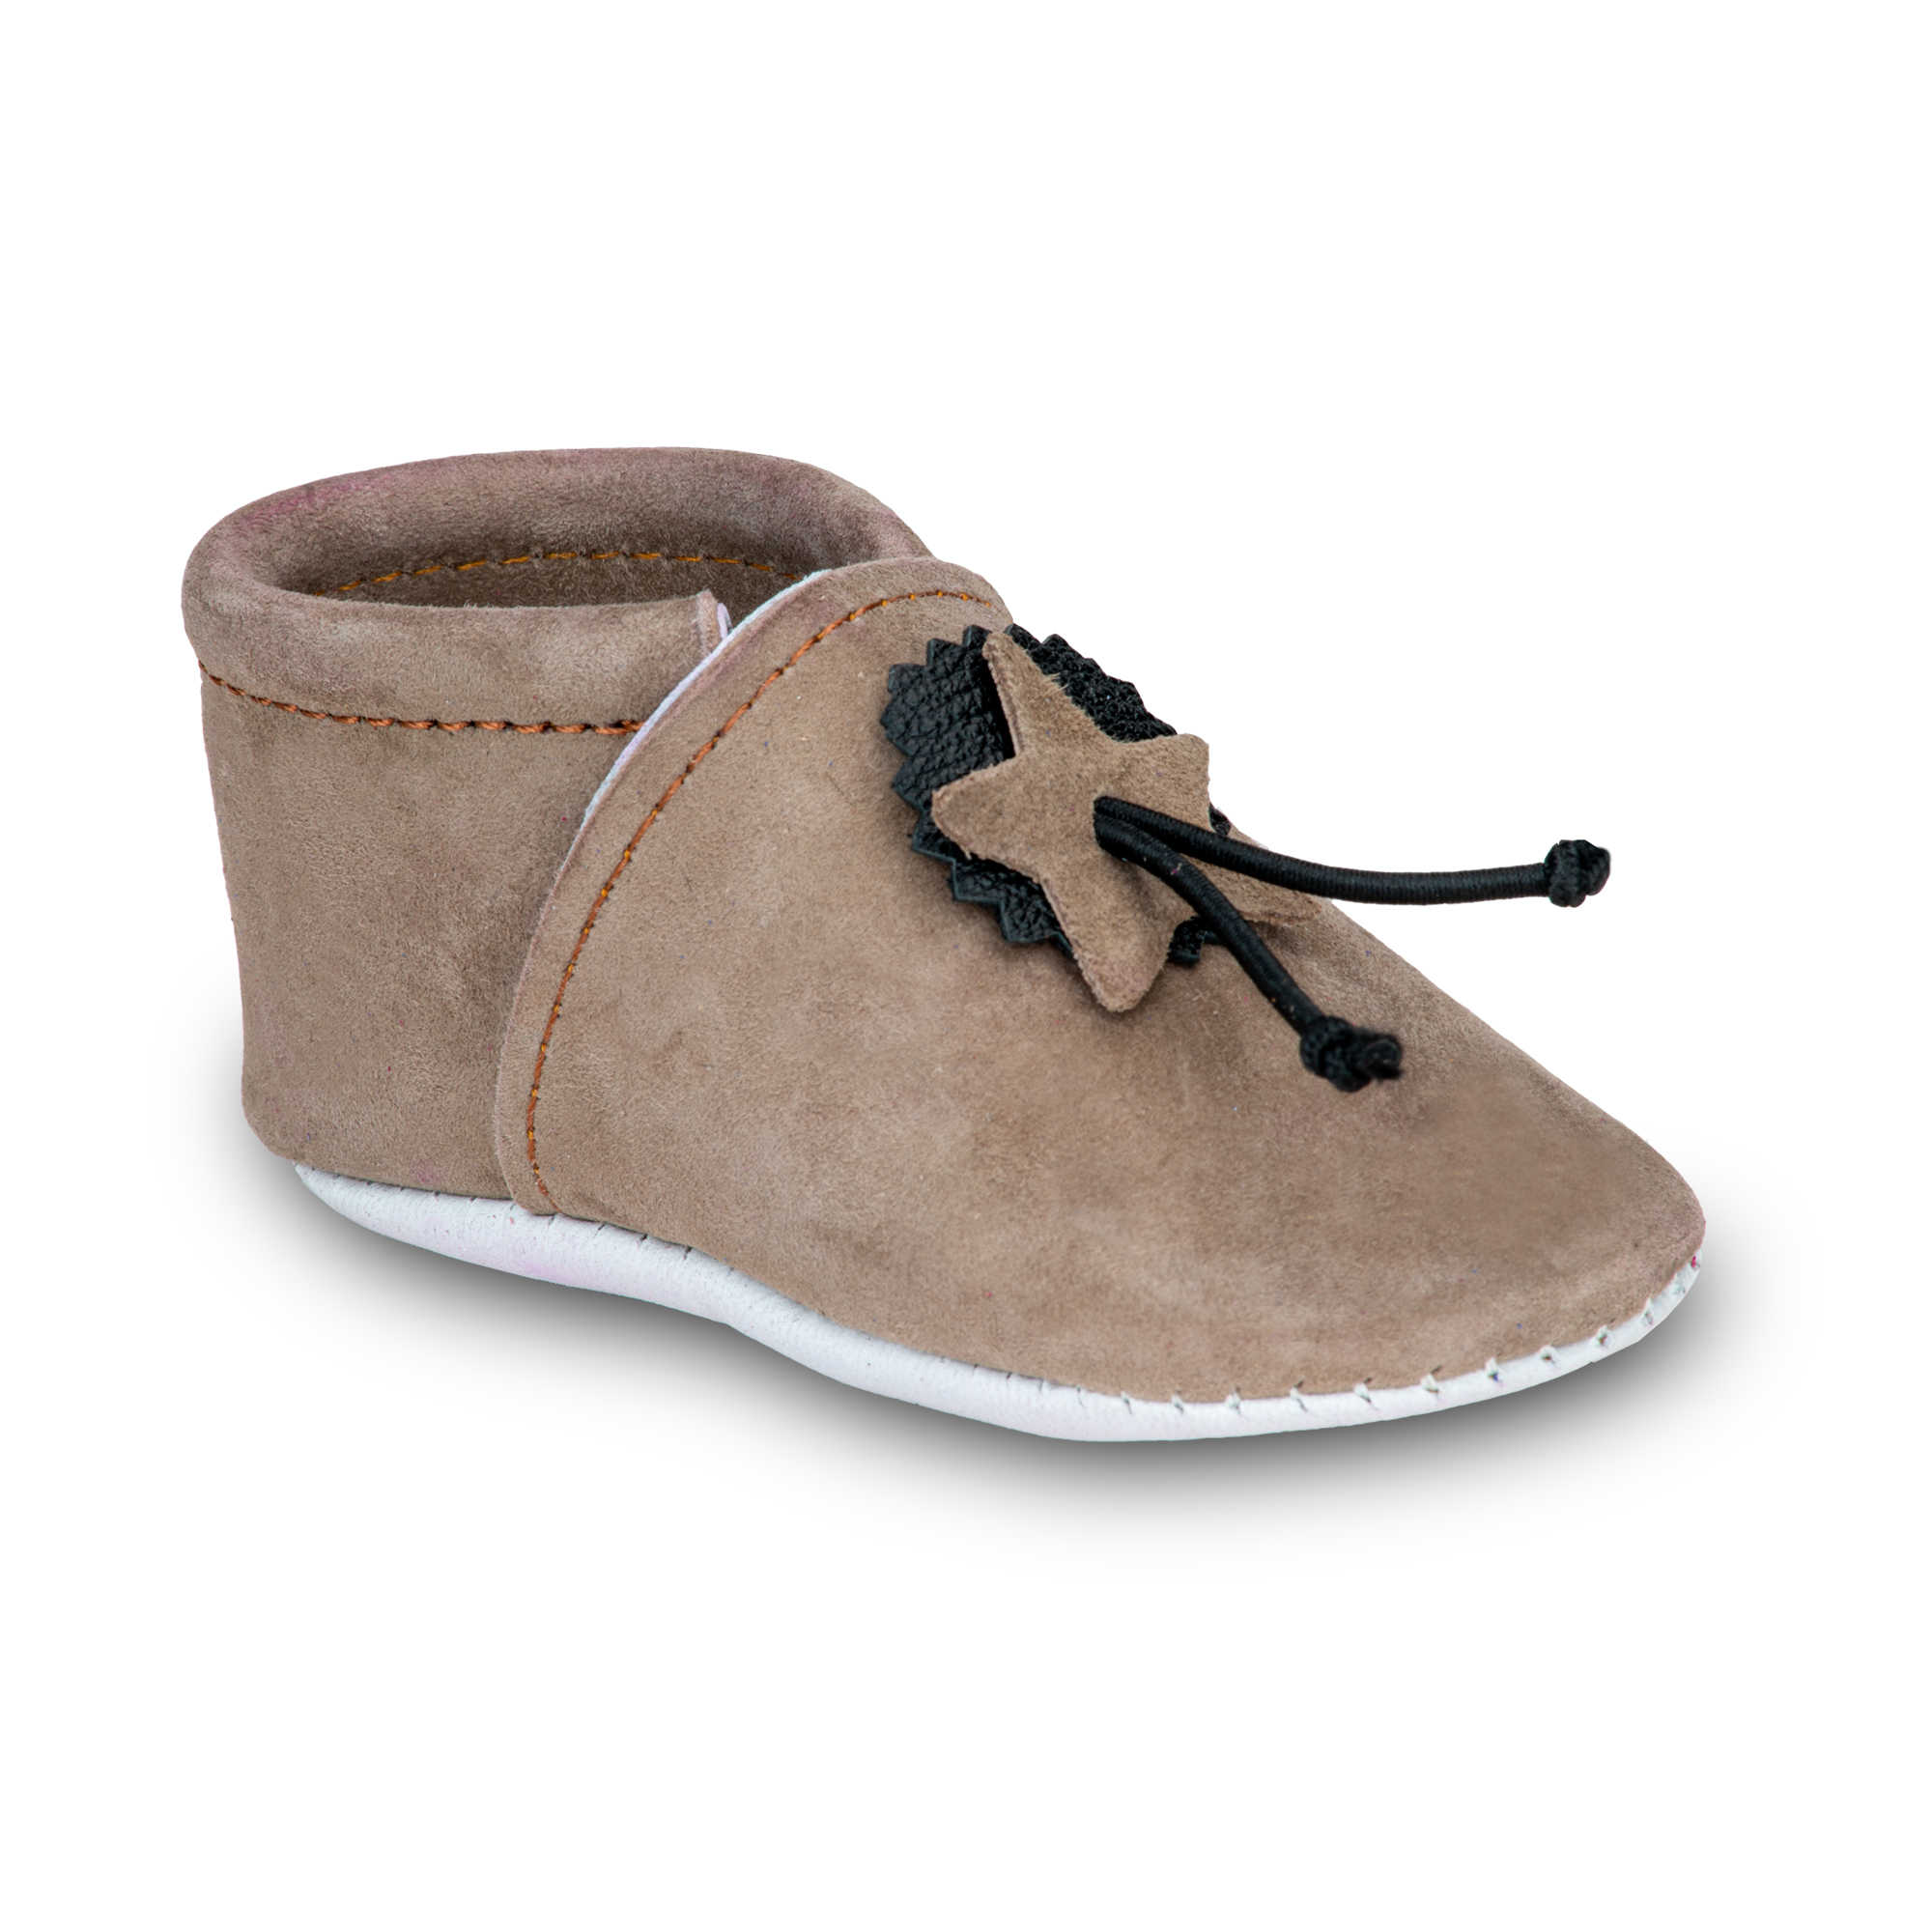 Chaussons Souples Bebe Beige Taille 22